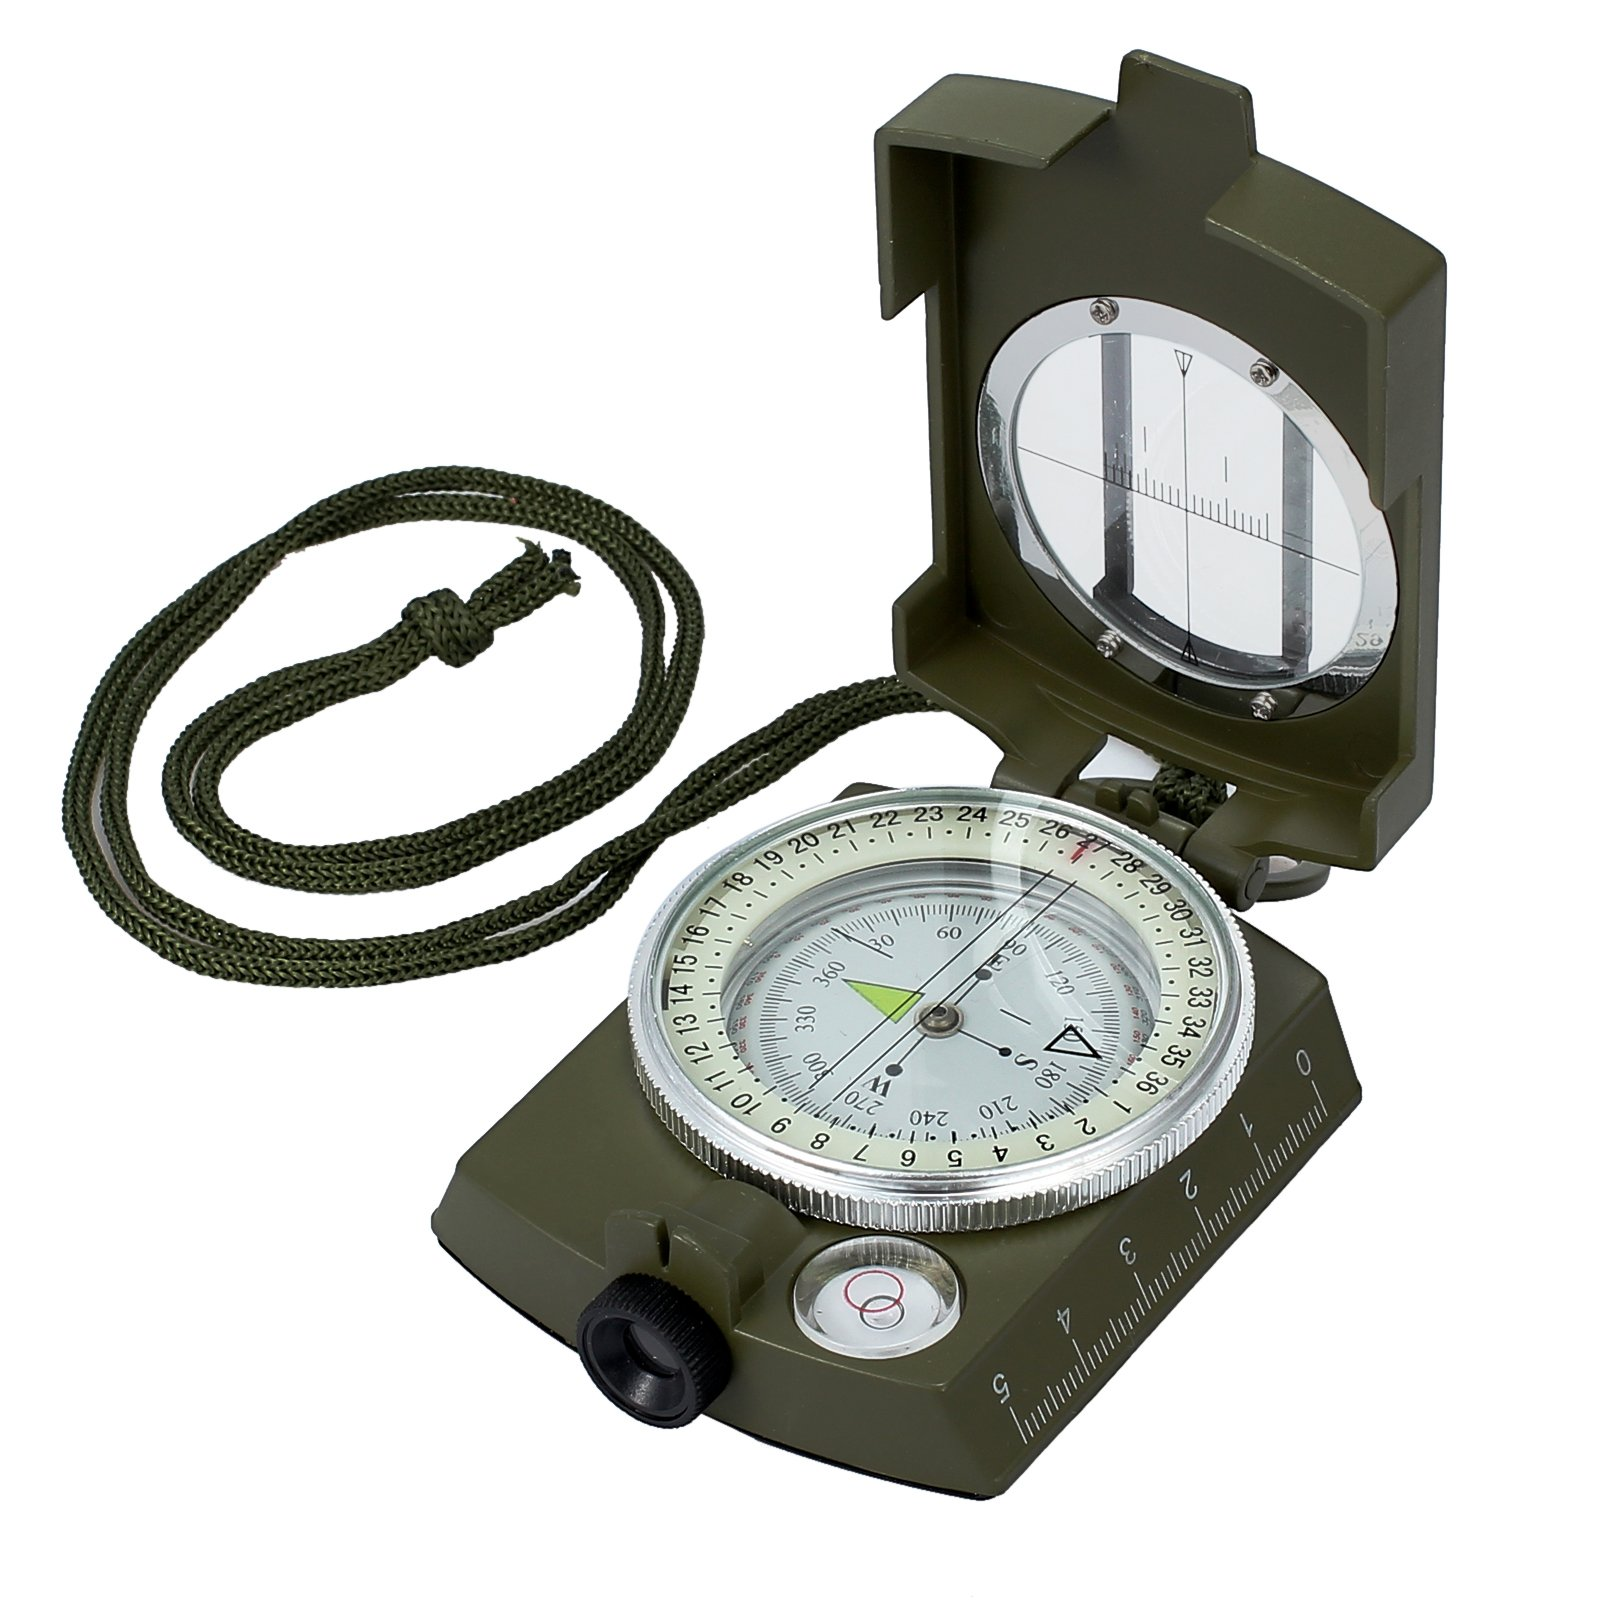 Proster Professional Compass Metal Waterproof IP65 Compass Carry Bag Camping Hunting Hiking by Proster